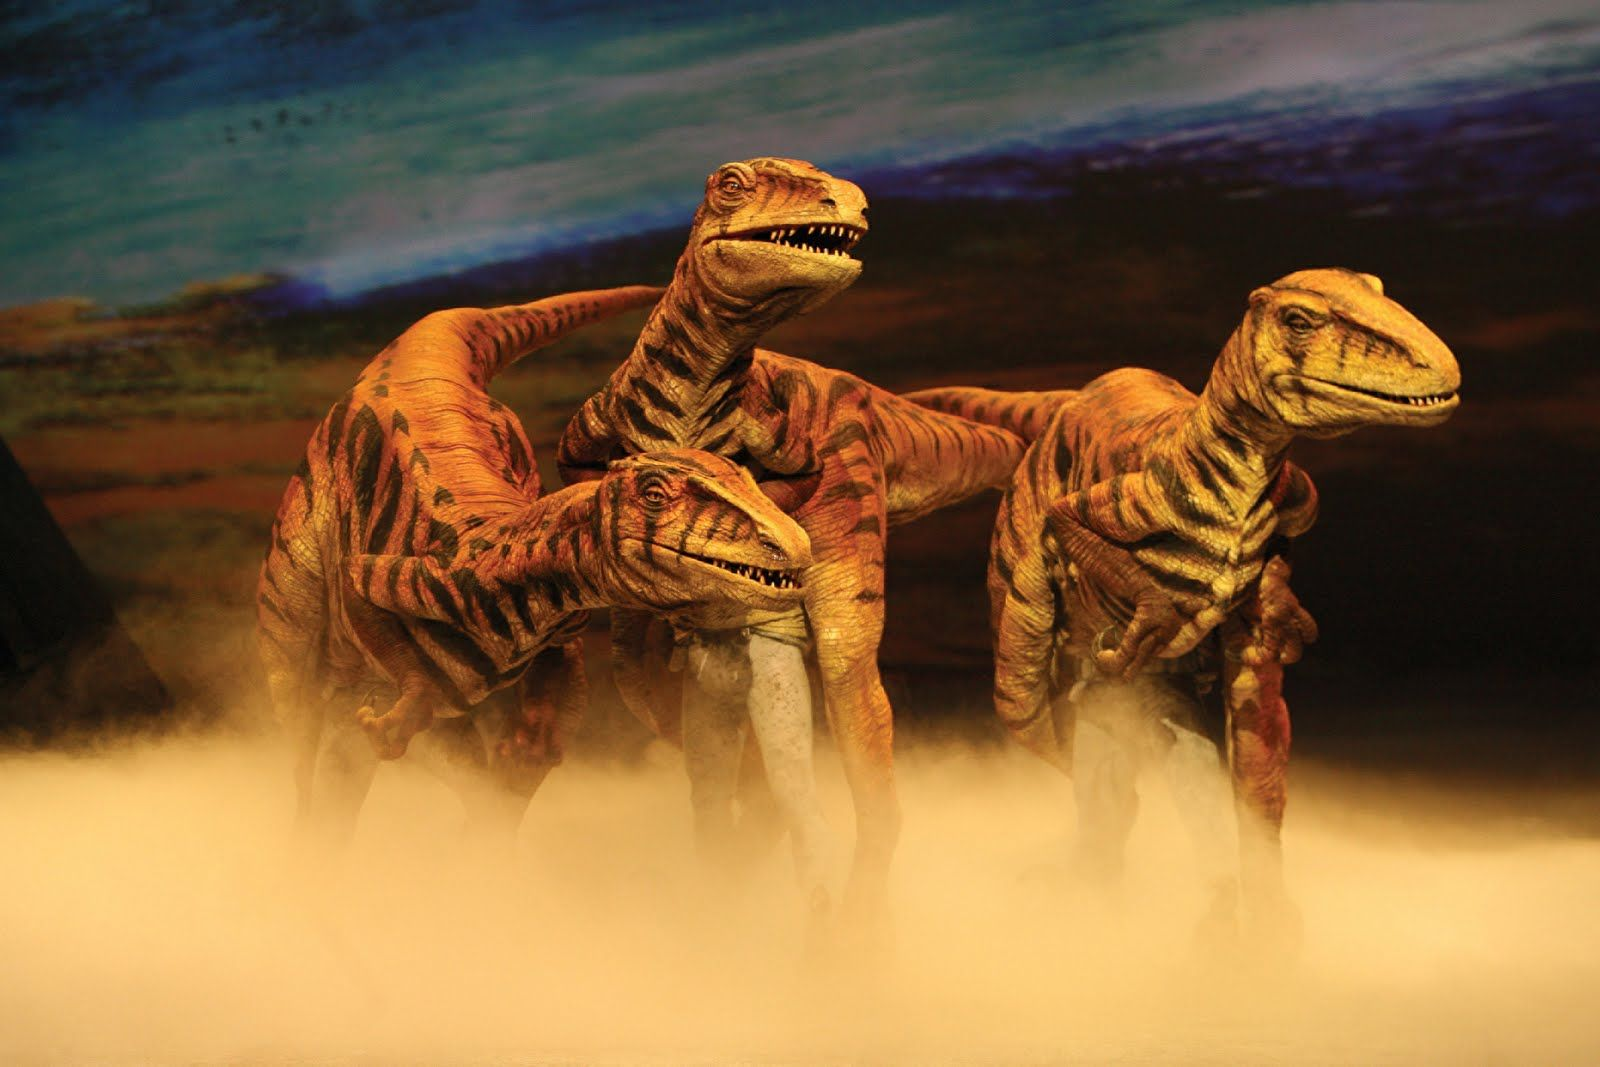 Pin By Matthew Skinner On Dinosours Walking With Dinosaurs Dinosaur Images Dinosaur Exhibition